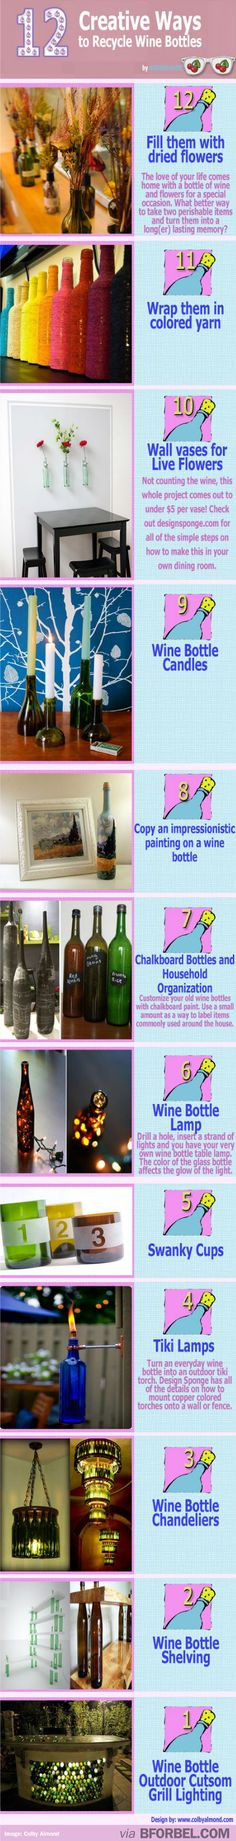 12 Creative Ways To Recycle And Reuse Wine Bottles…